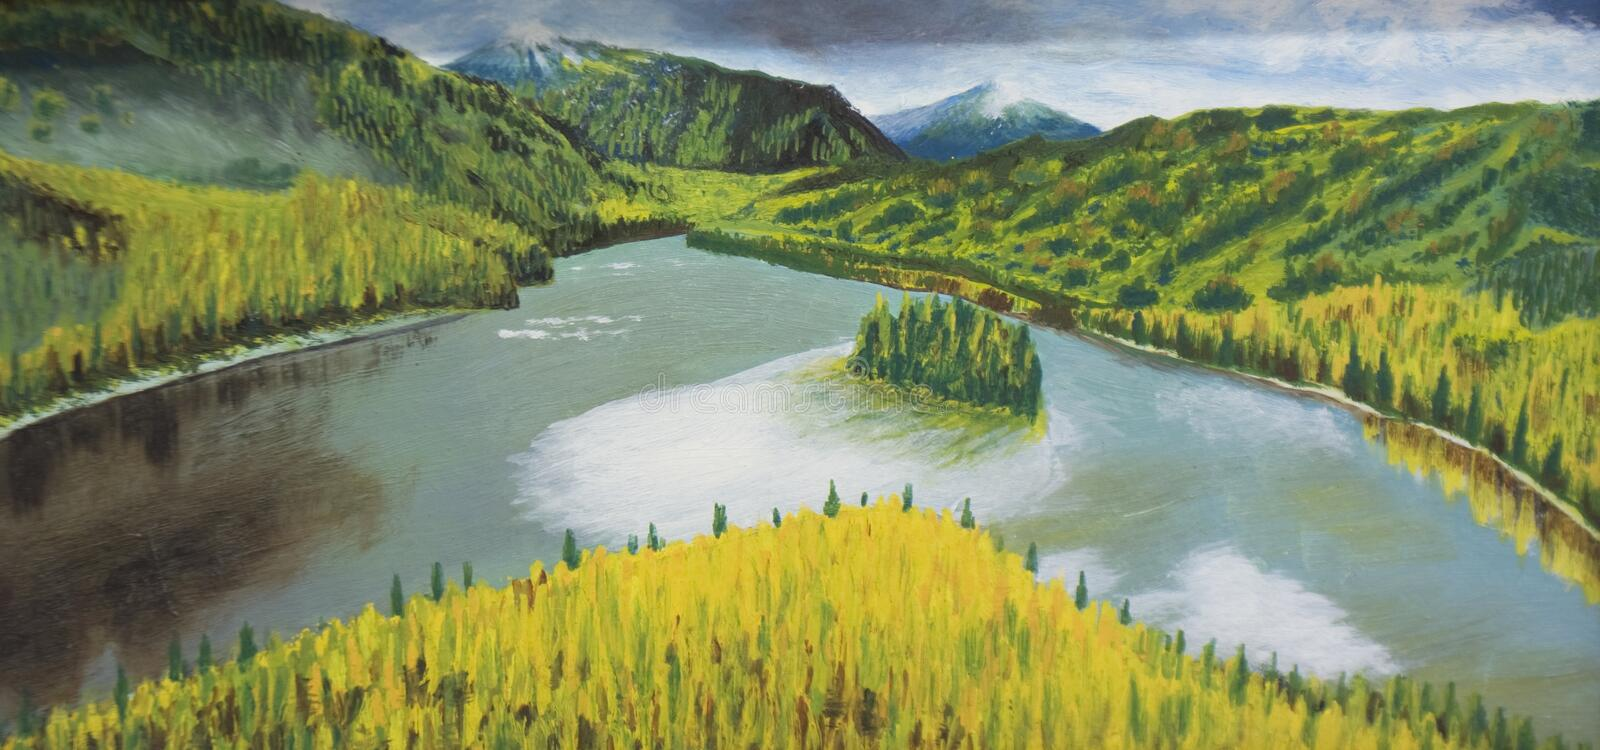 Hills and river, painting royalty free stock photos